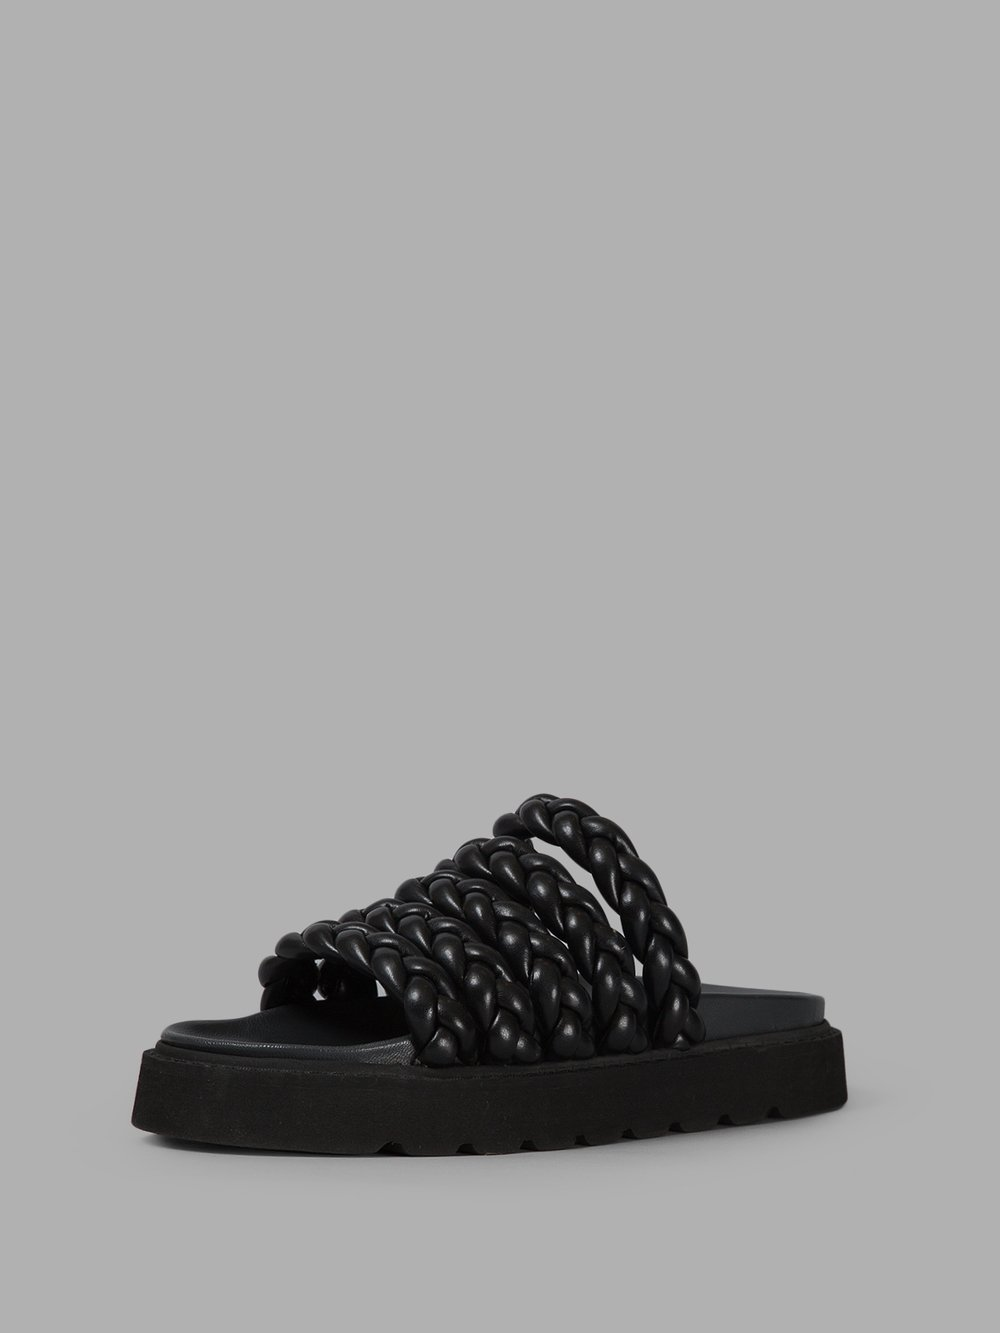 Image of BB BRUNO BORDESE SANDALS